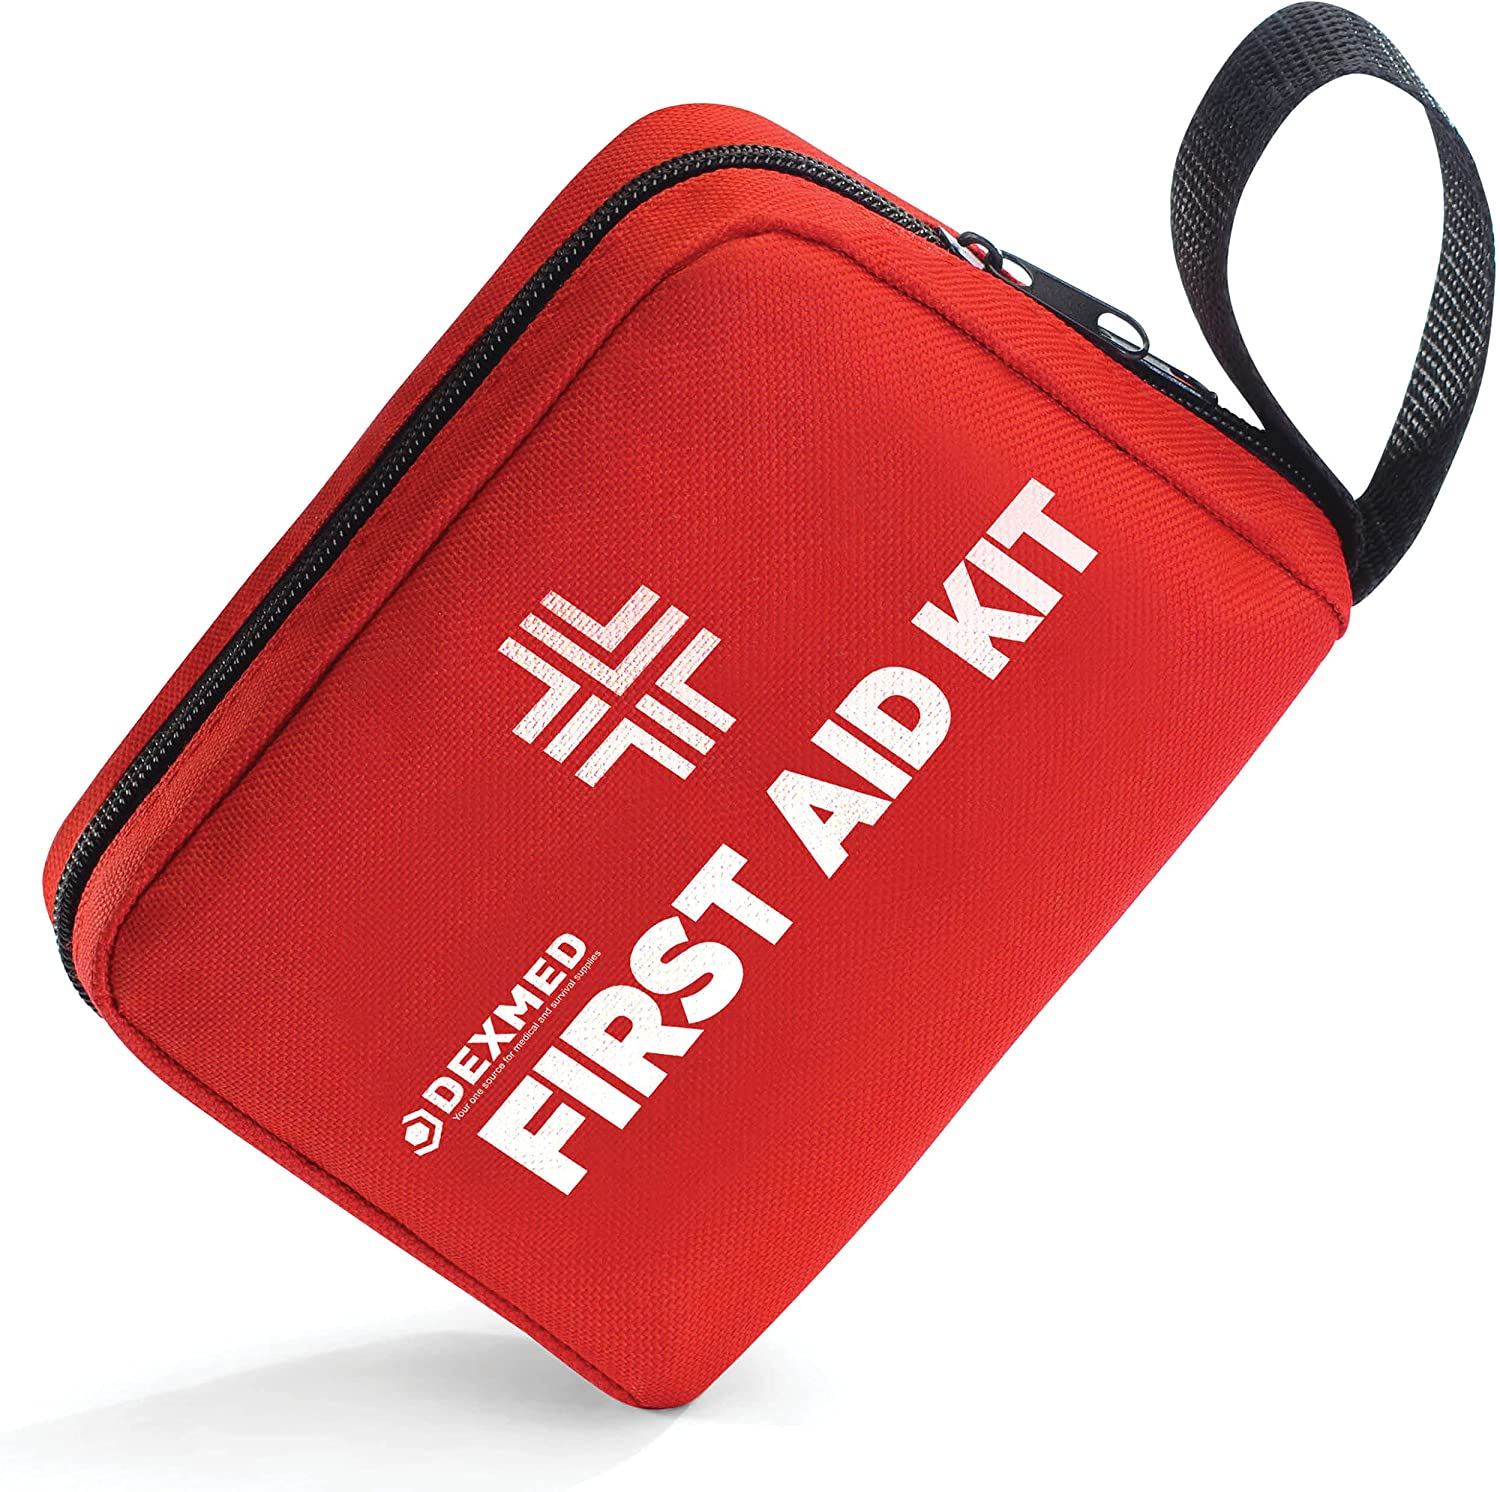 Small First Aid Kit with Professional Medical Supplies and Survival Equipment - Lightweight, Waterproof, and Compact Medical Kit for Home, Travel, Camping, Hiking, Car, Office